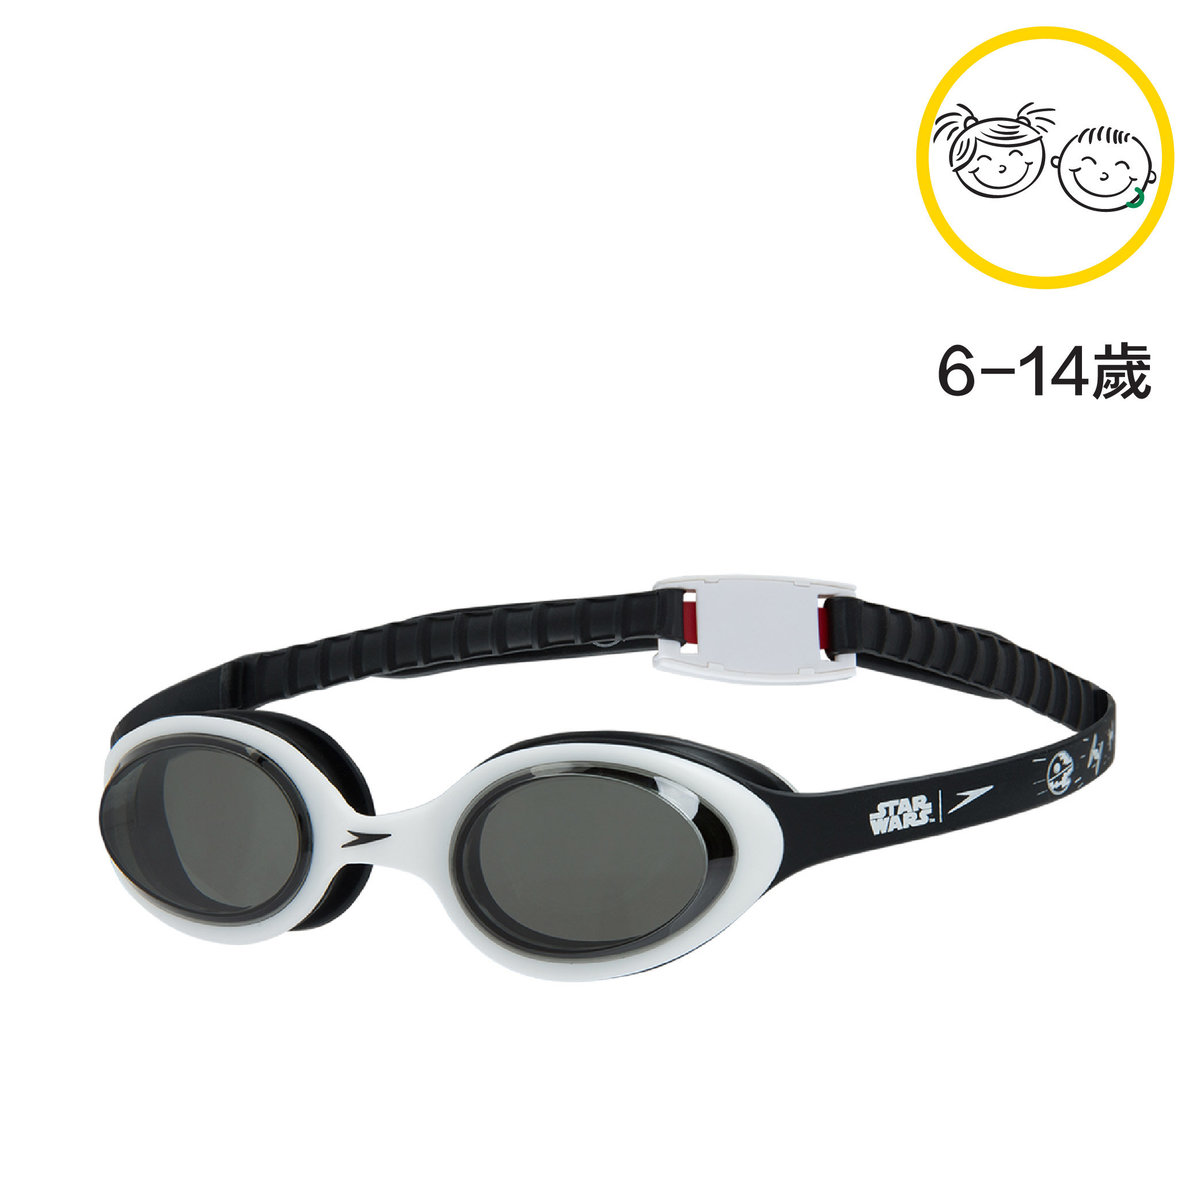 STAR WARS Junior  (aged 6-14) Goggles Licensed by Disney